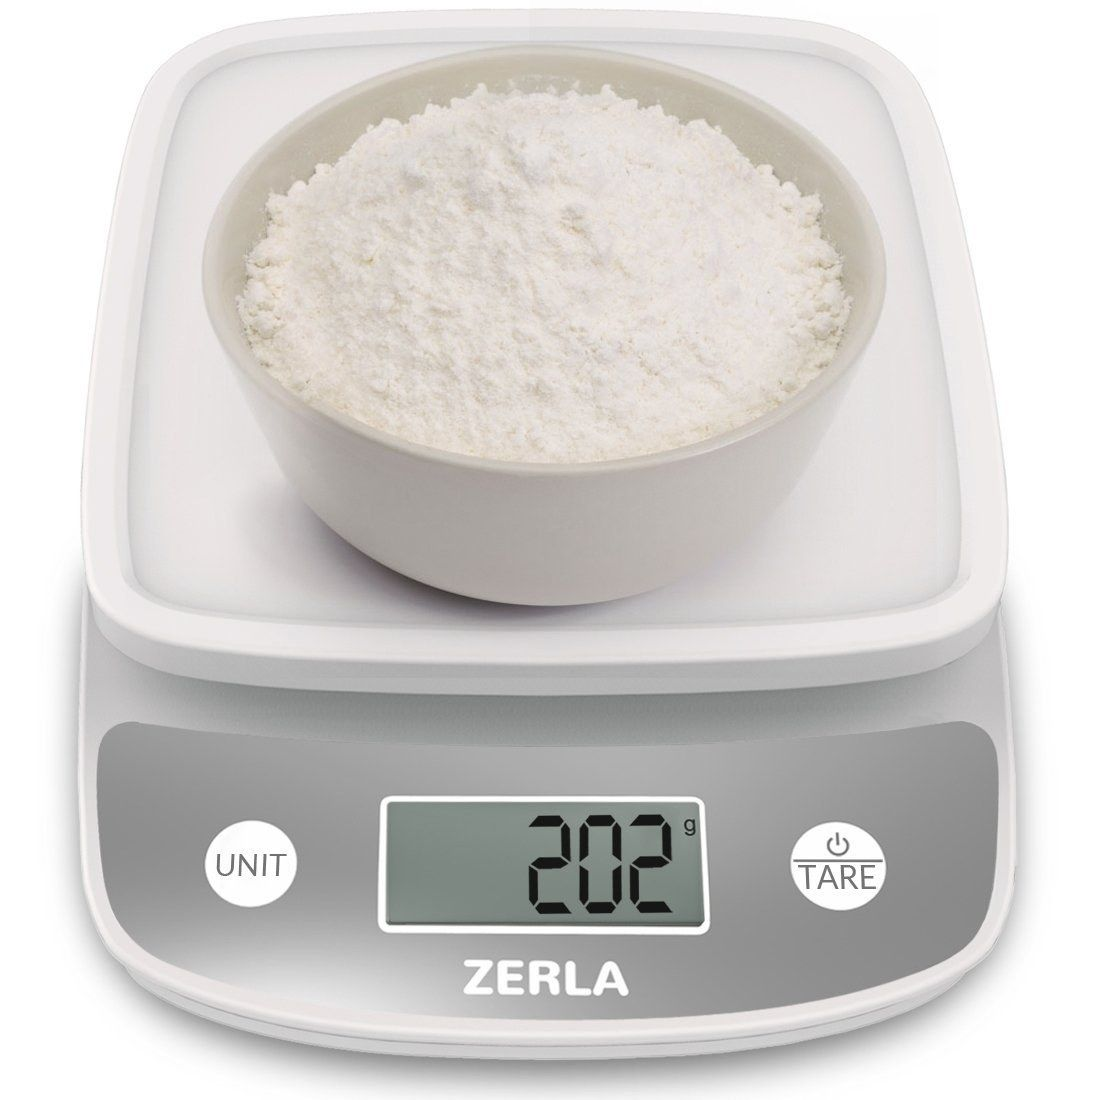 A digital kitchen scale to help you measure out portions